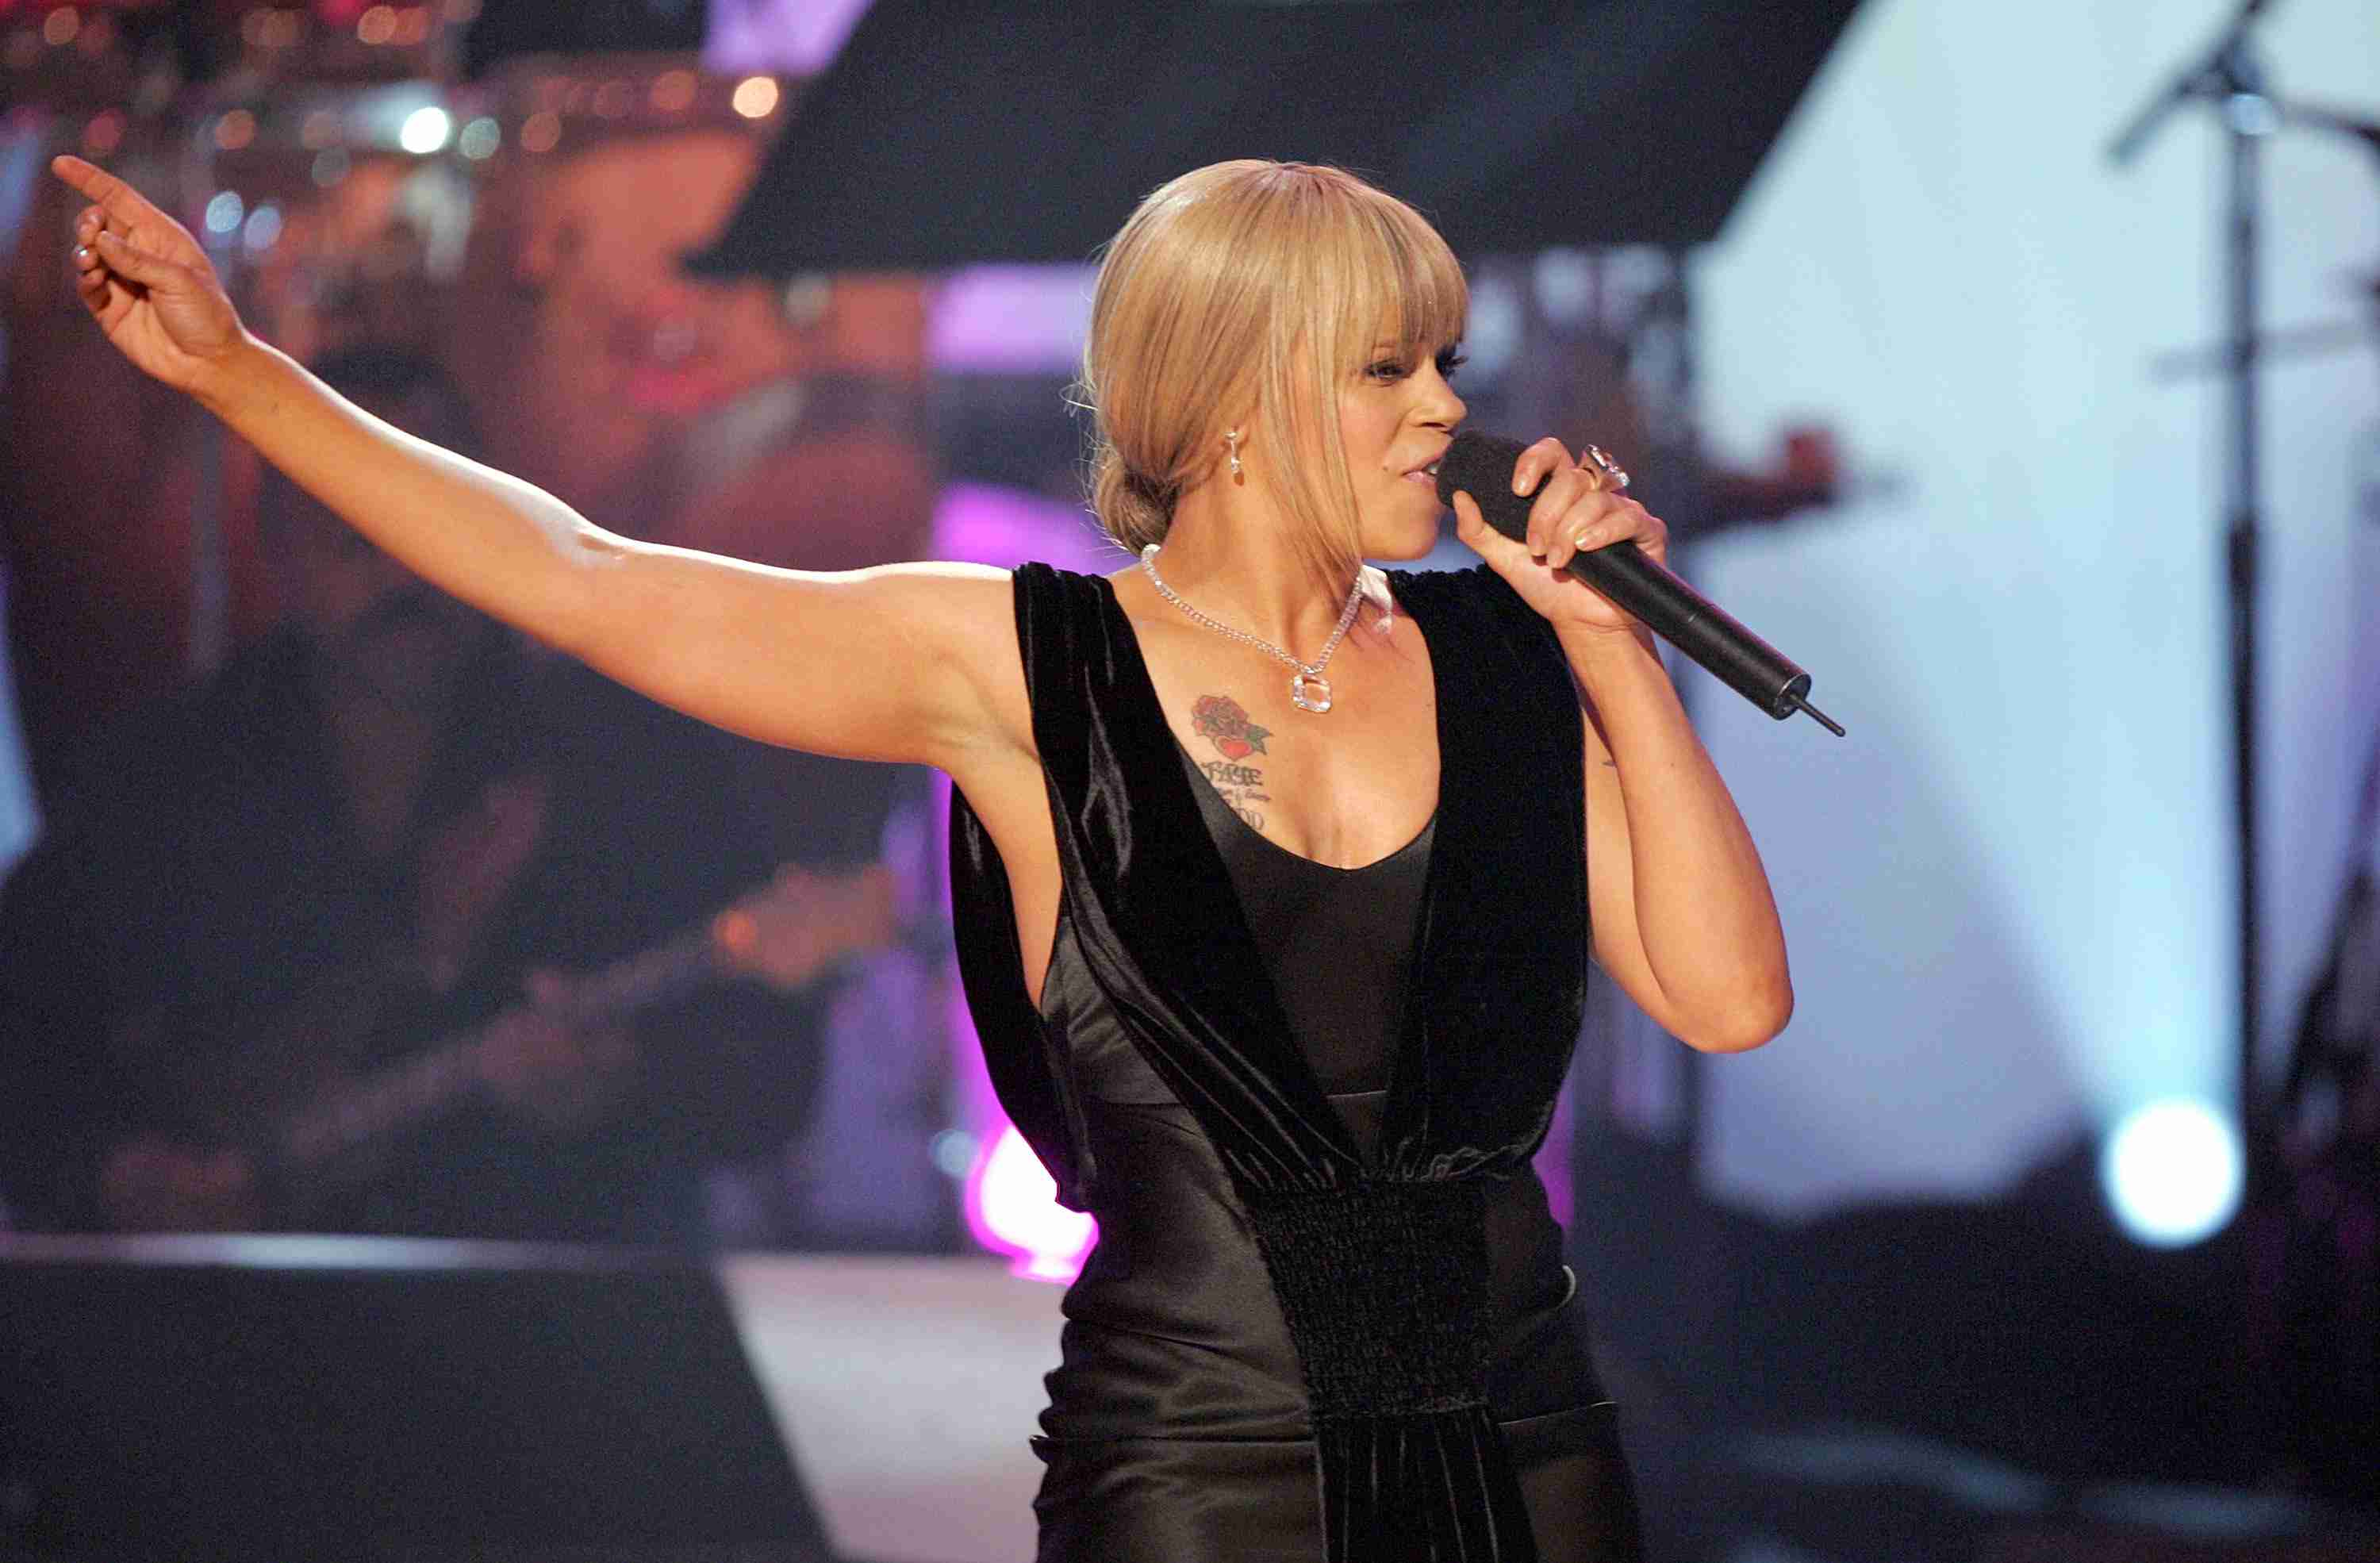 Faith Evans performing onstage